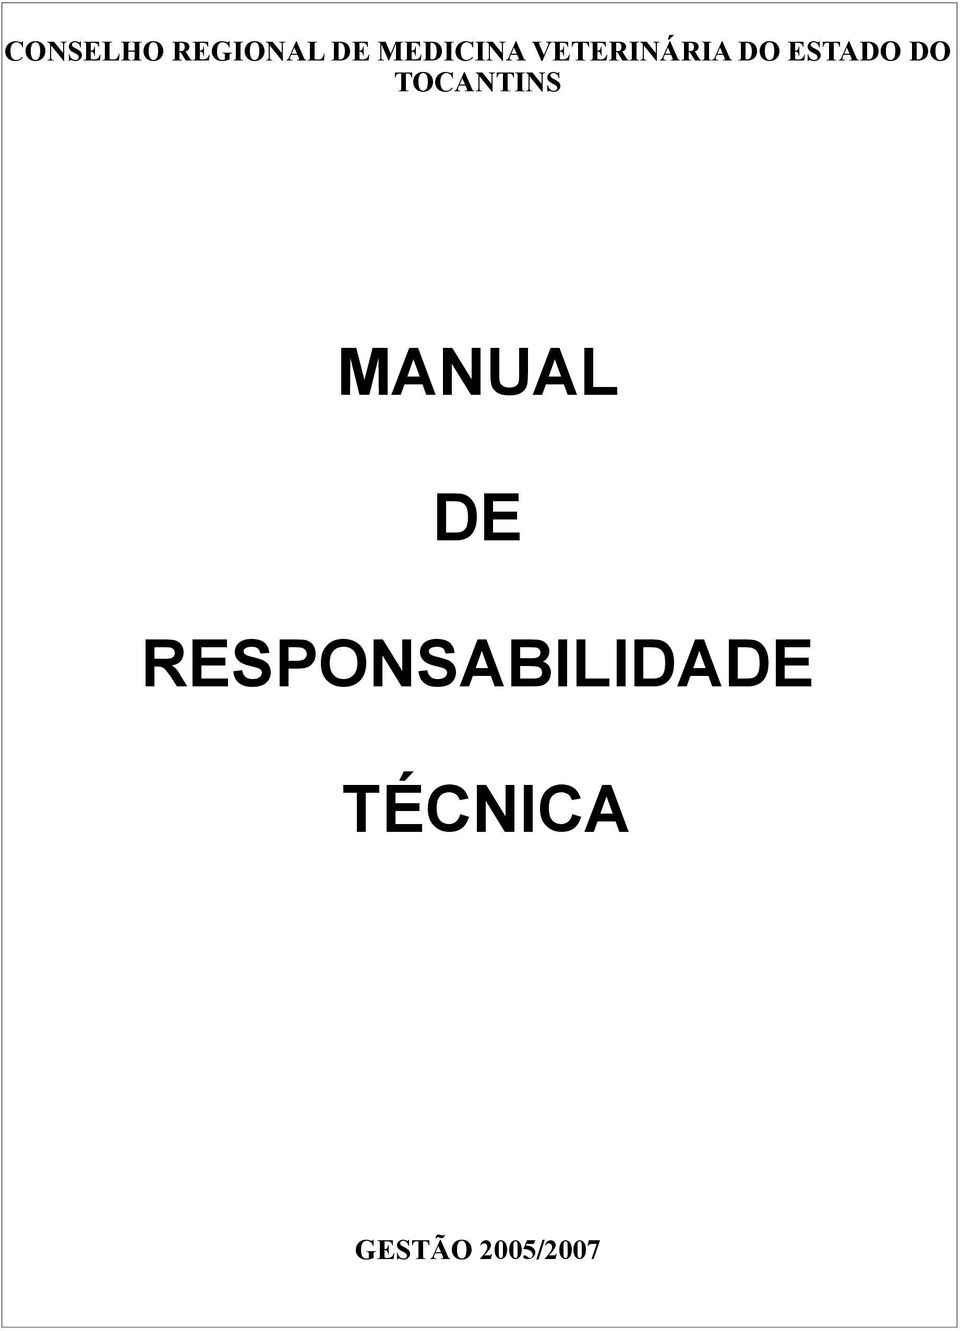 ESTADO DO TOCANTINS MANUAL